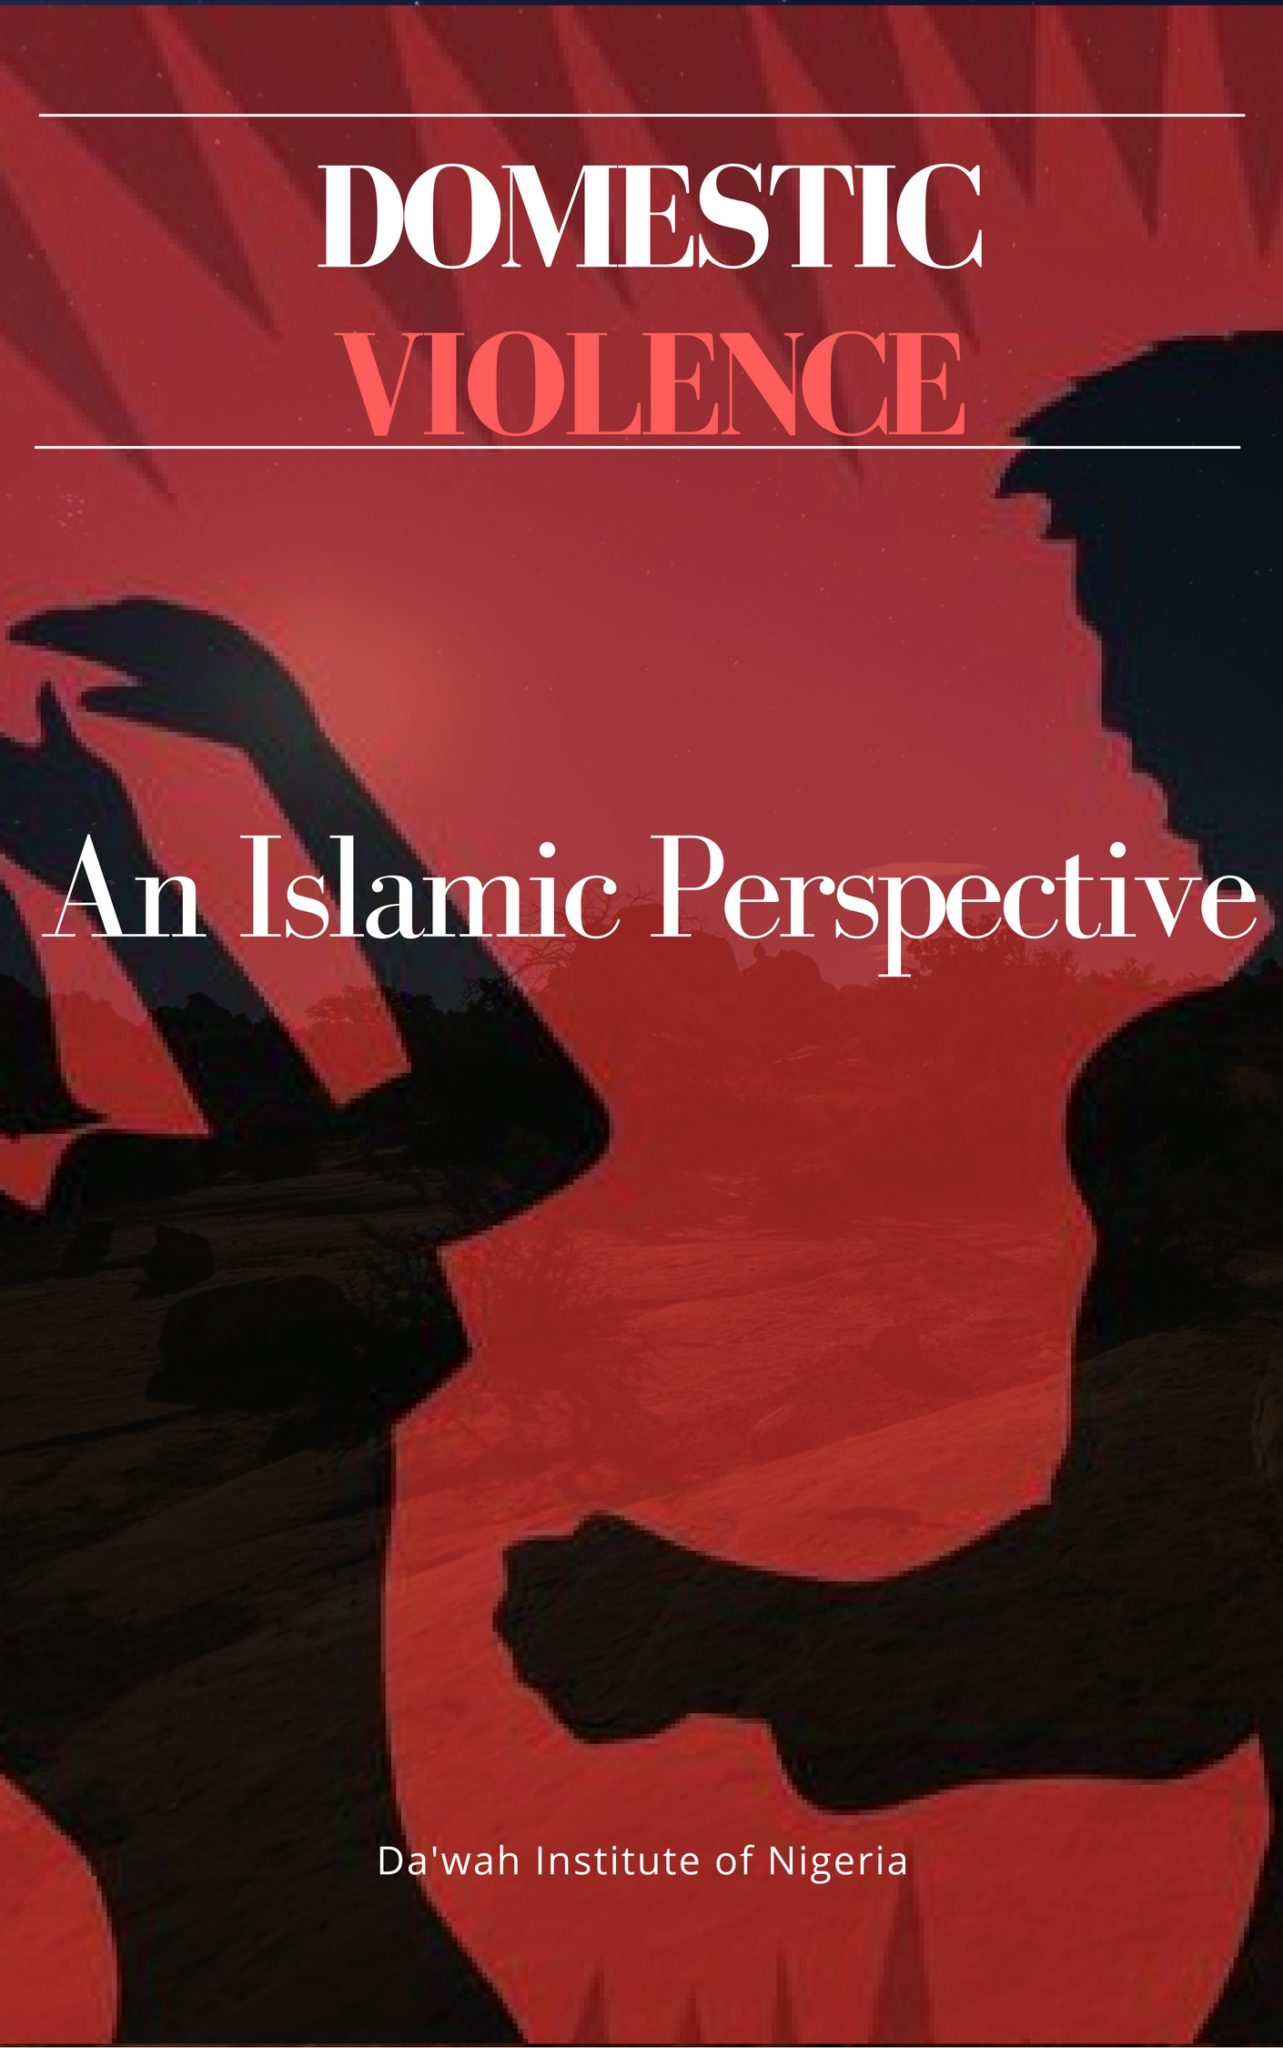 https://dawahinstitute.org/wp-content/uploads/DOMESTIC-VIOLENCE_-An-Islamic-Perspective.jpg